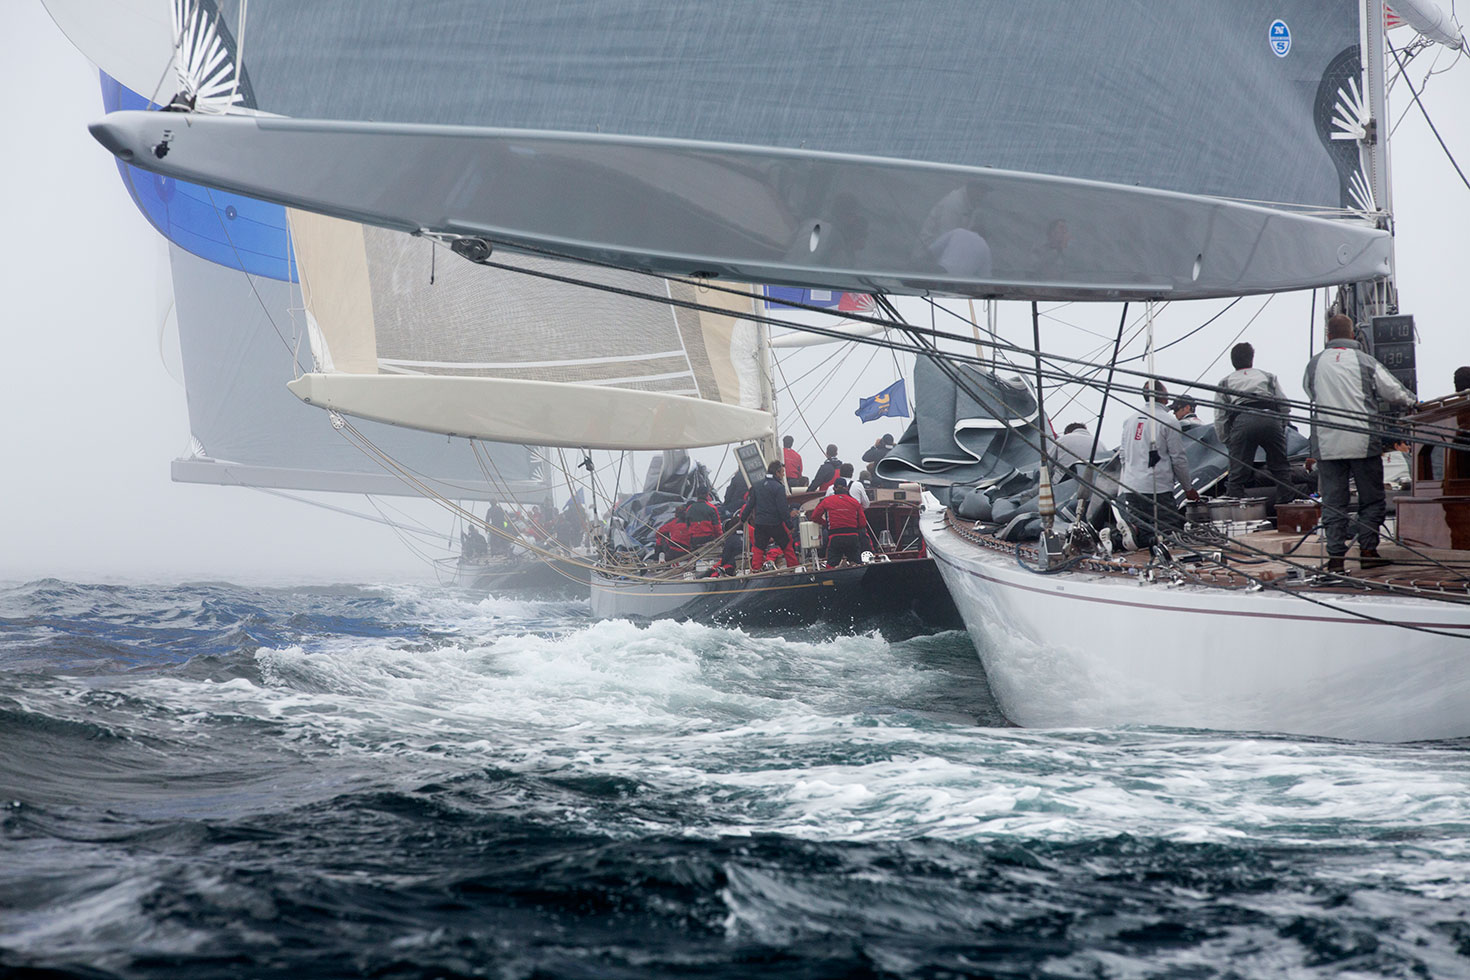 Photo: Lionheart leads Velsheda and lastly Ranger on a downwind leg (looks great blown up) at the J Class Falmouth 2012 © Emily Harris Photography